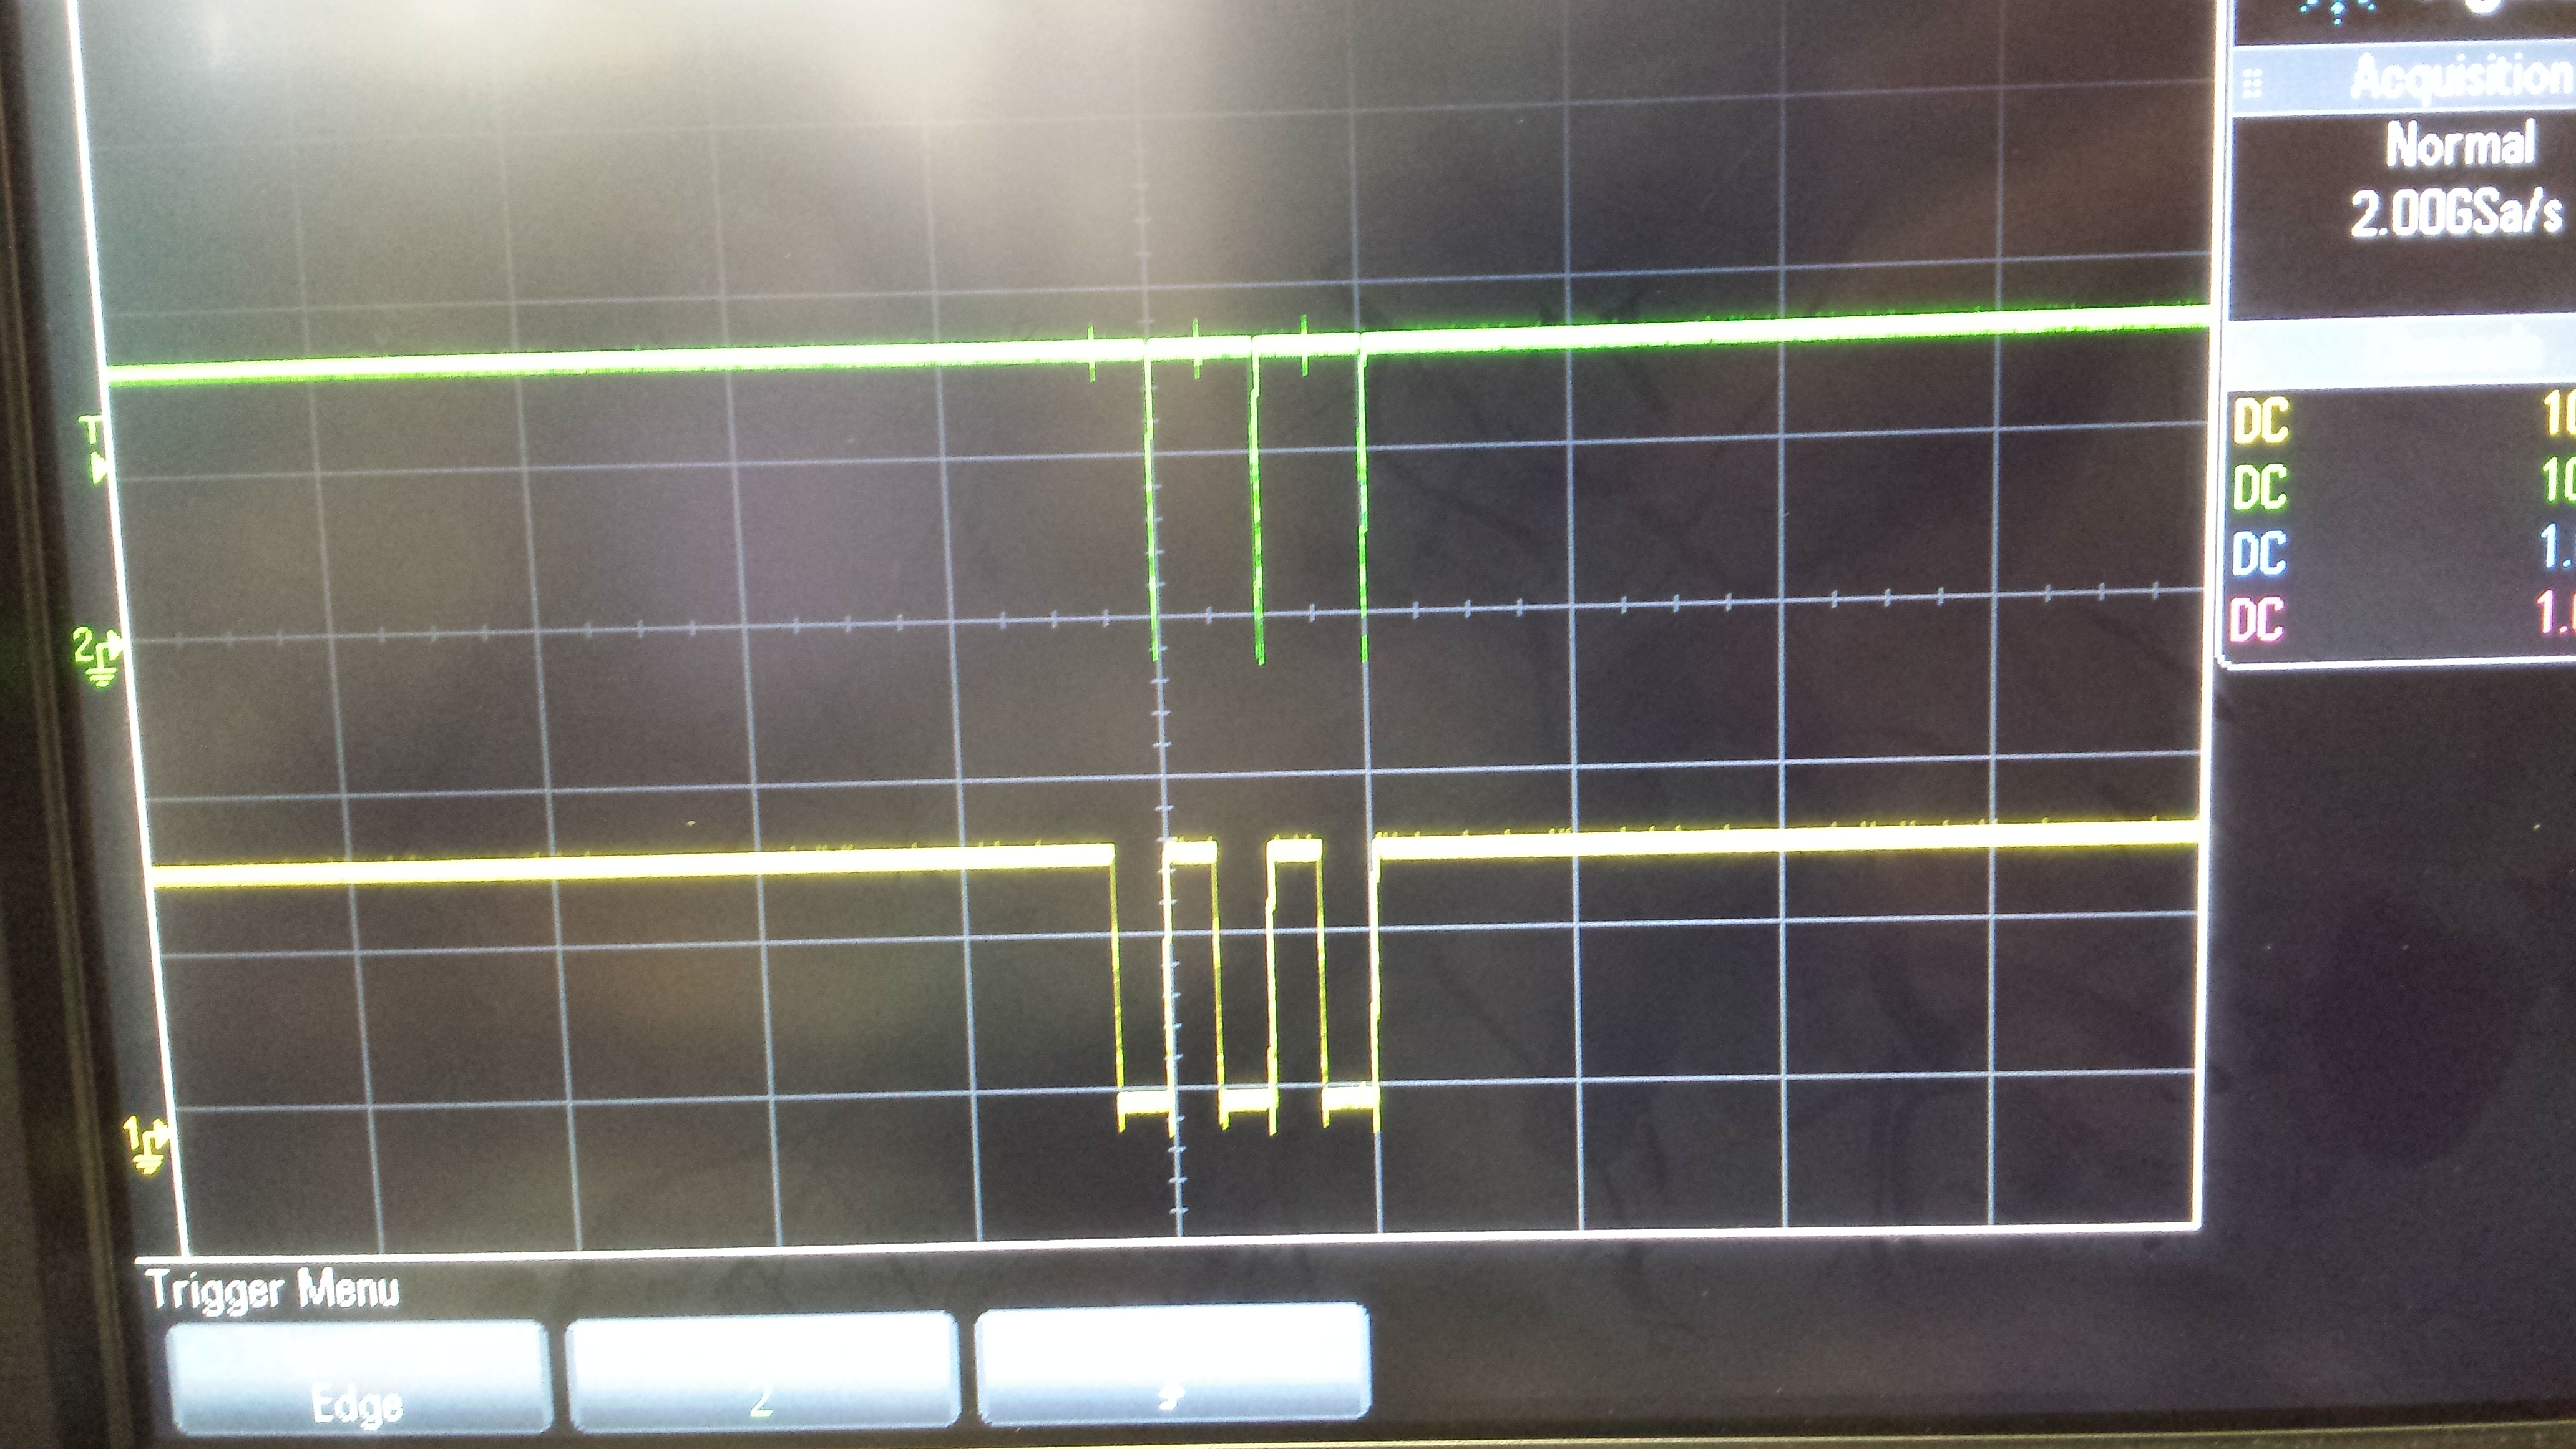 Resolved I2c Not Working While Basics Are Correct Interface Level Shifter Circuit Image Search Results With 25kohm Pull Ups On Both Side We Have The Following Up 33v And 25 27kohm 5v Looks Same